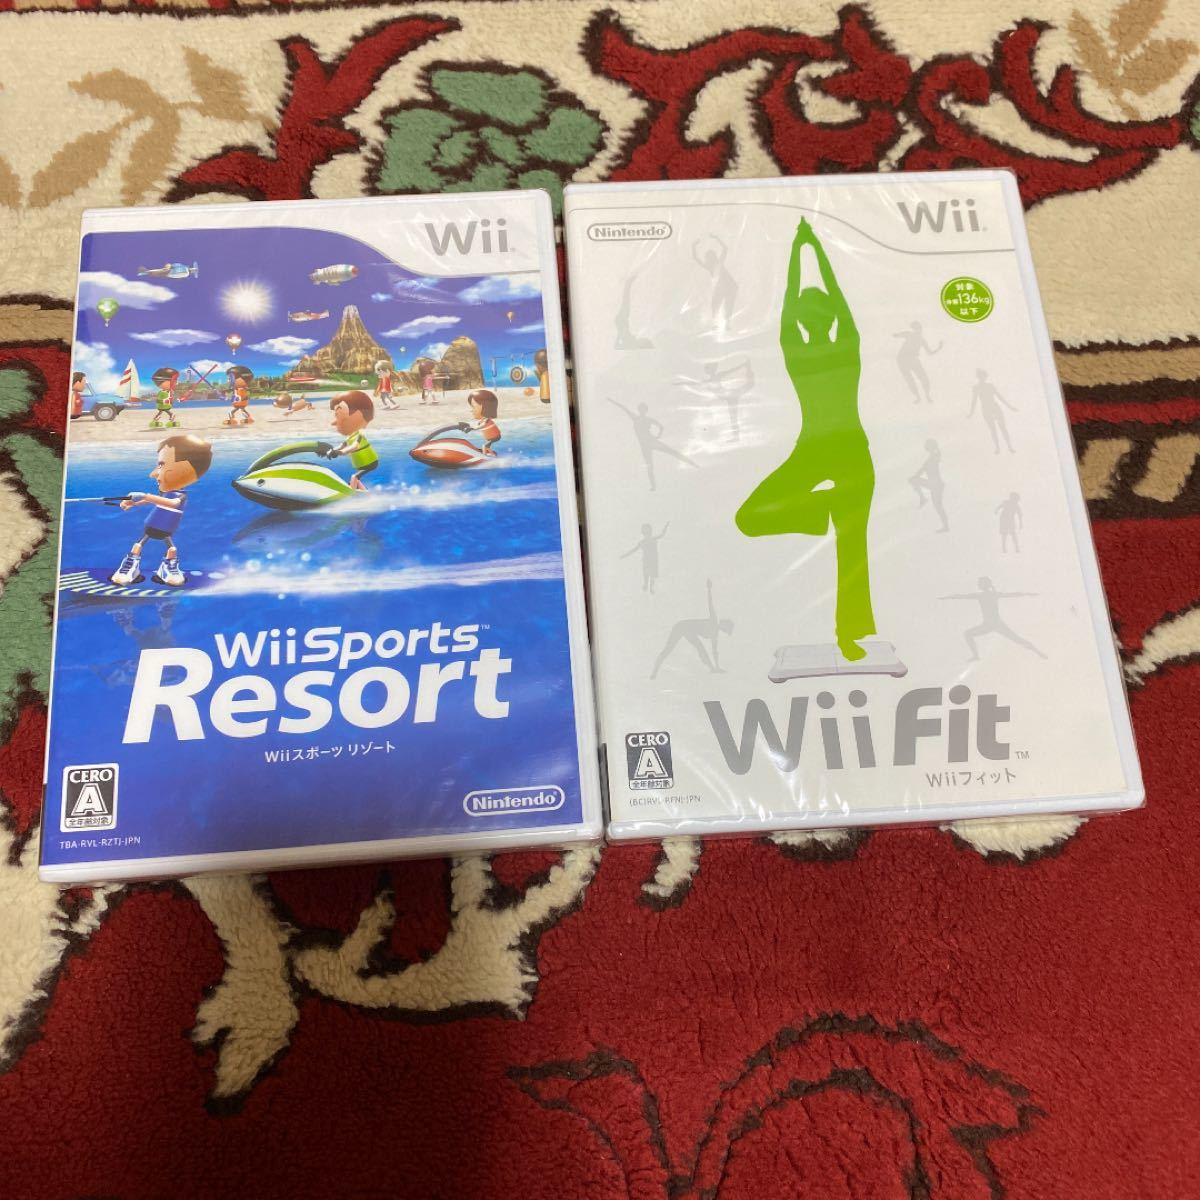 wiiスポーツリゾート&wiiフィット 新品未開封品セット